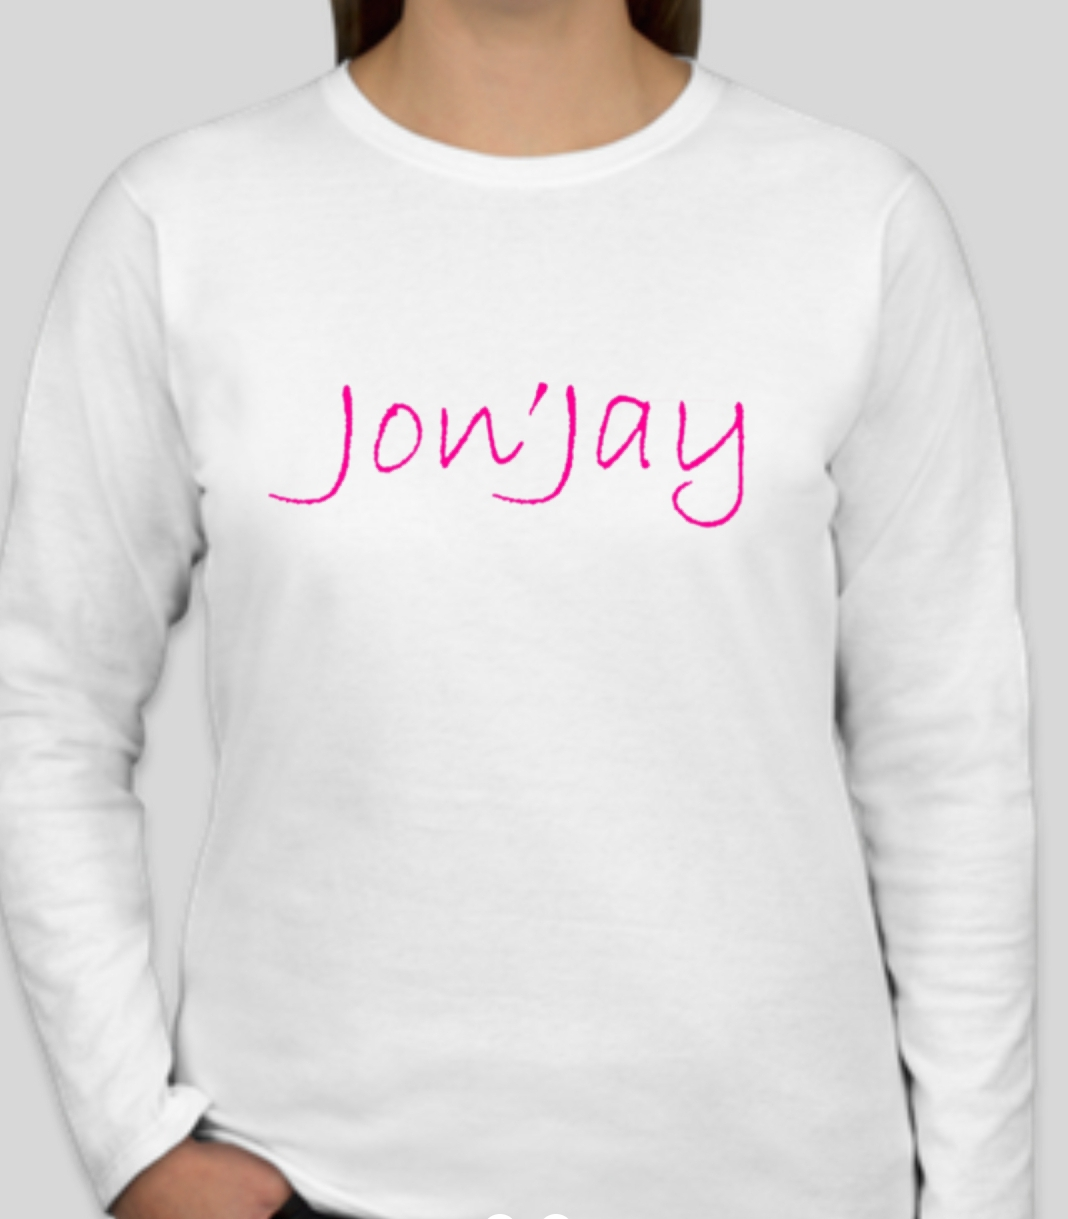 Jon'Jay Ladies white long sleeve